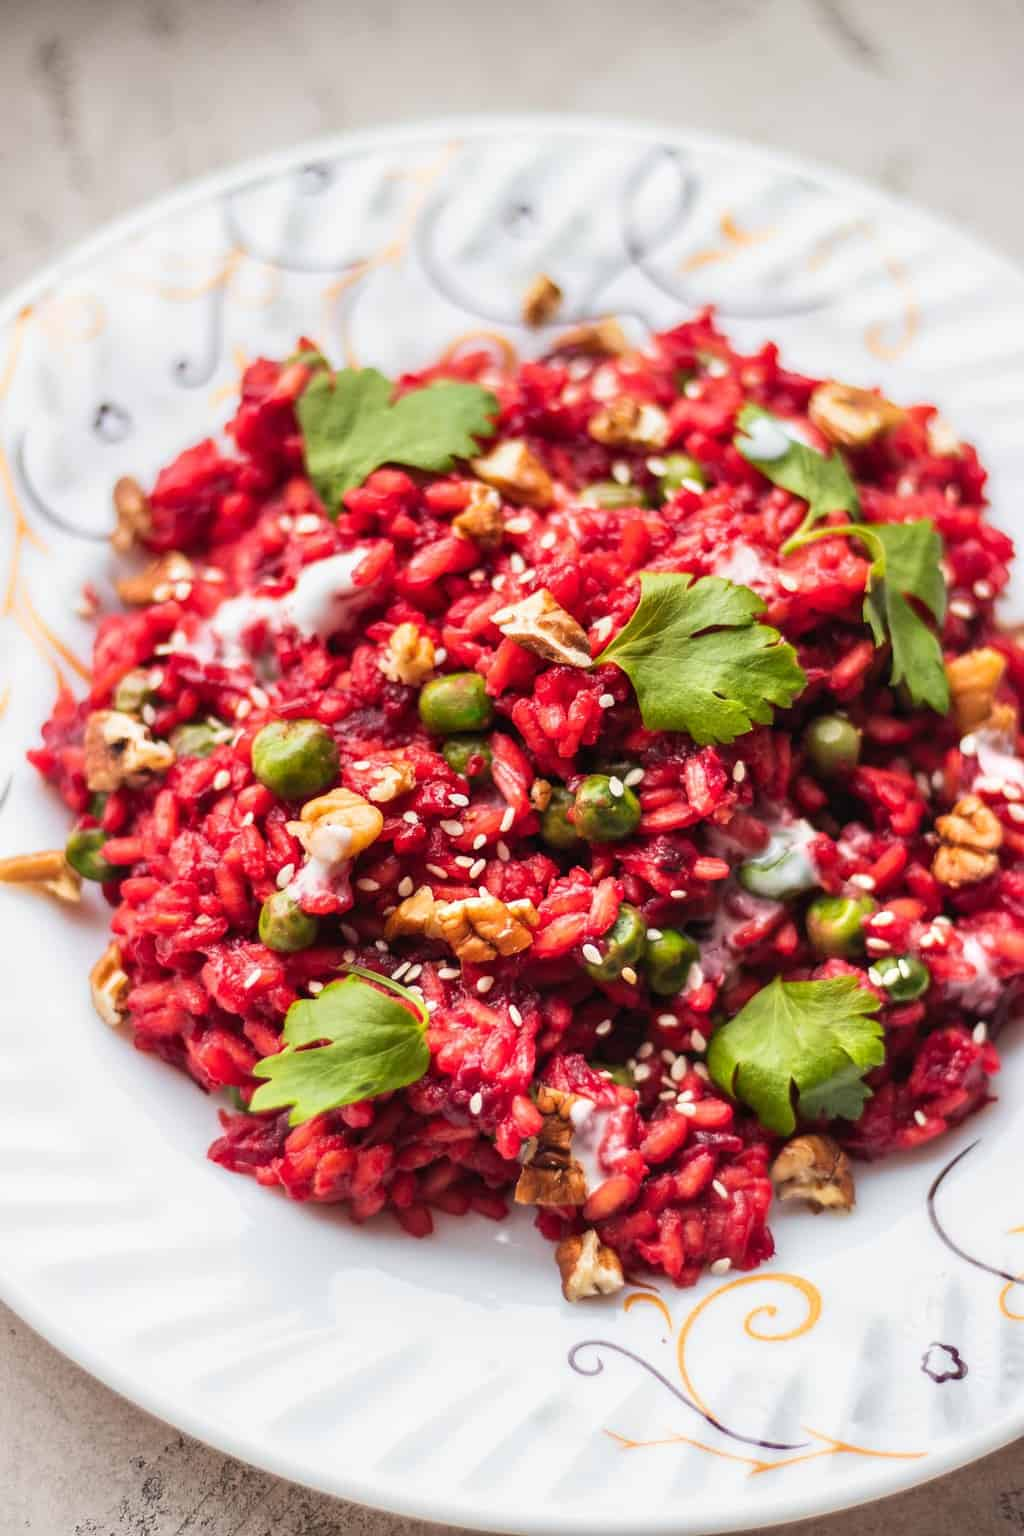 Beetroot risotto with walnuts and peas